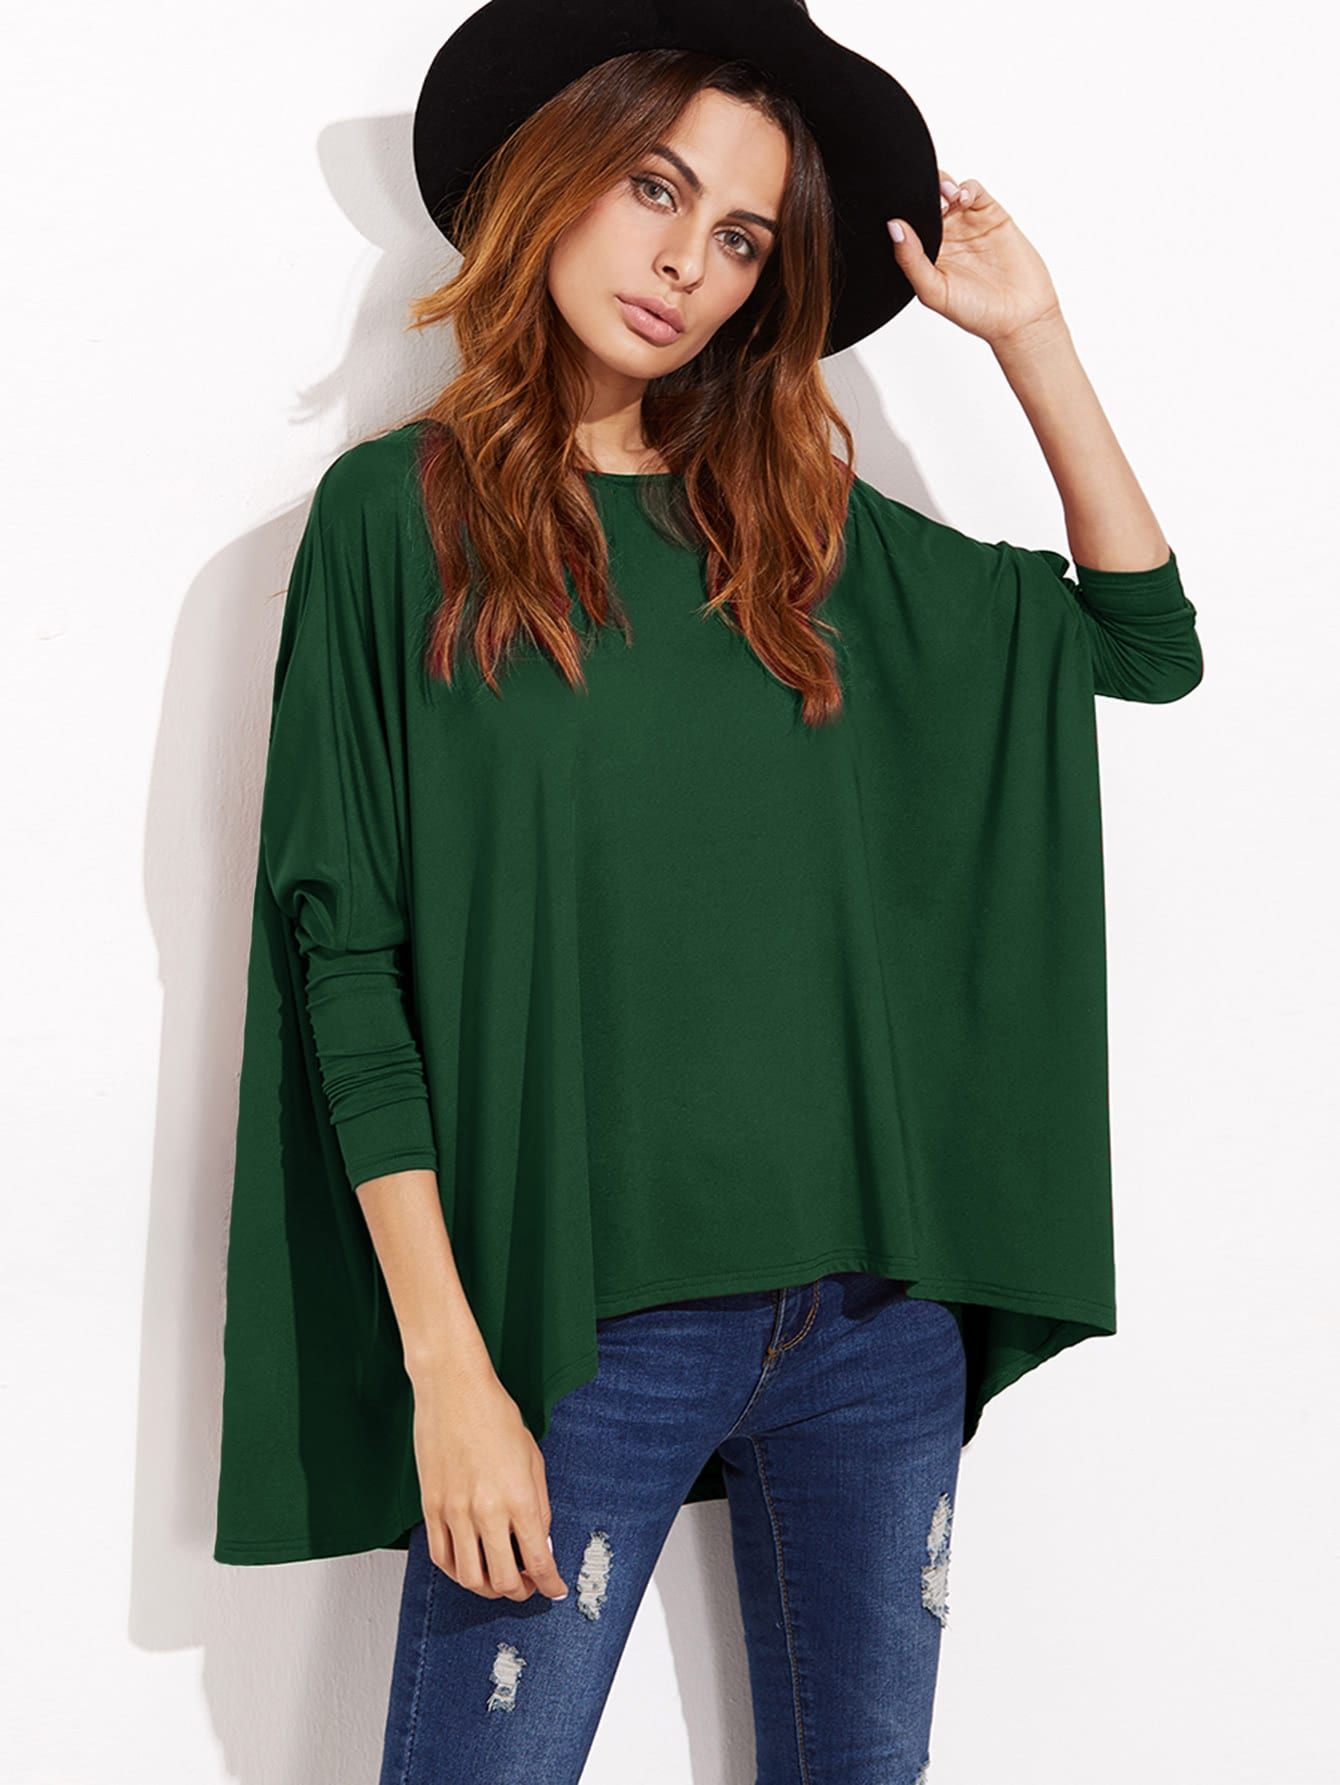 Boat Neckline Oversized Dolman Sleeve Tee boat neckline striped blouse with buttons